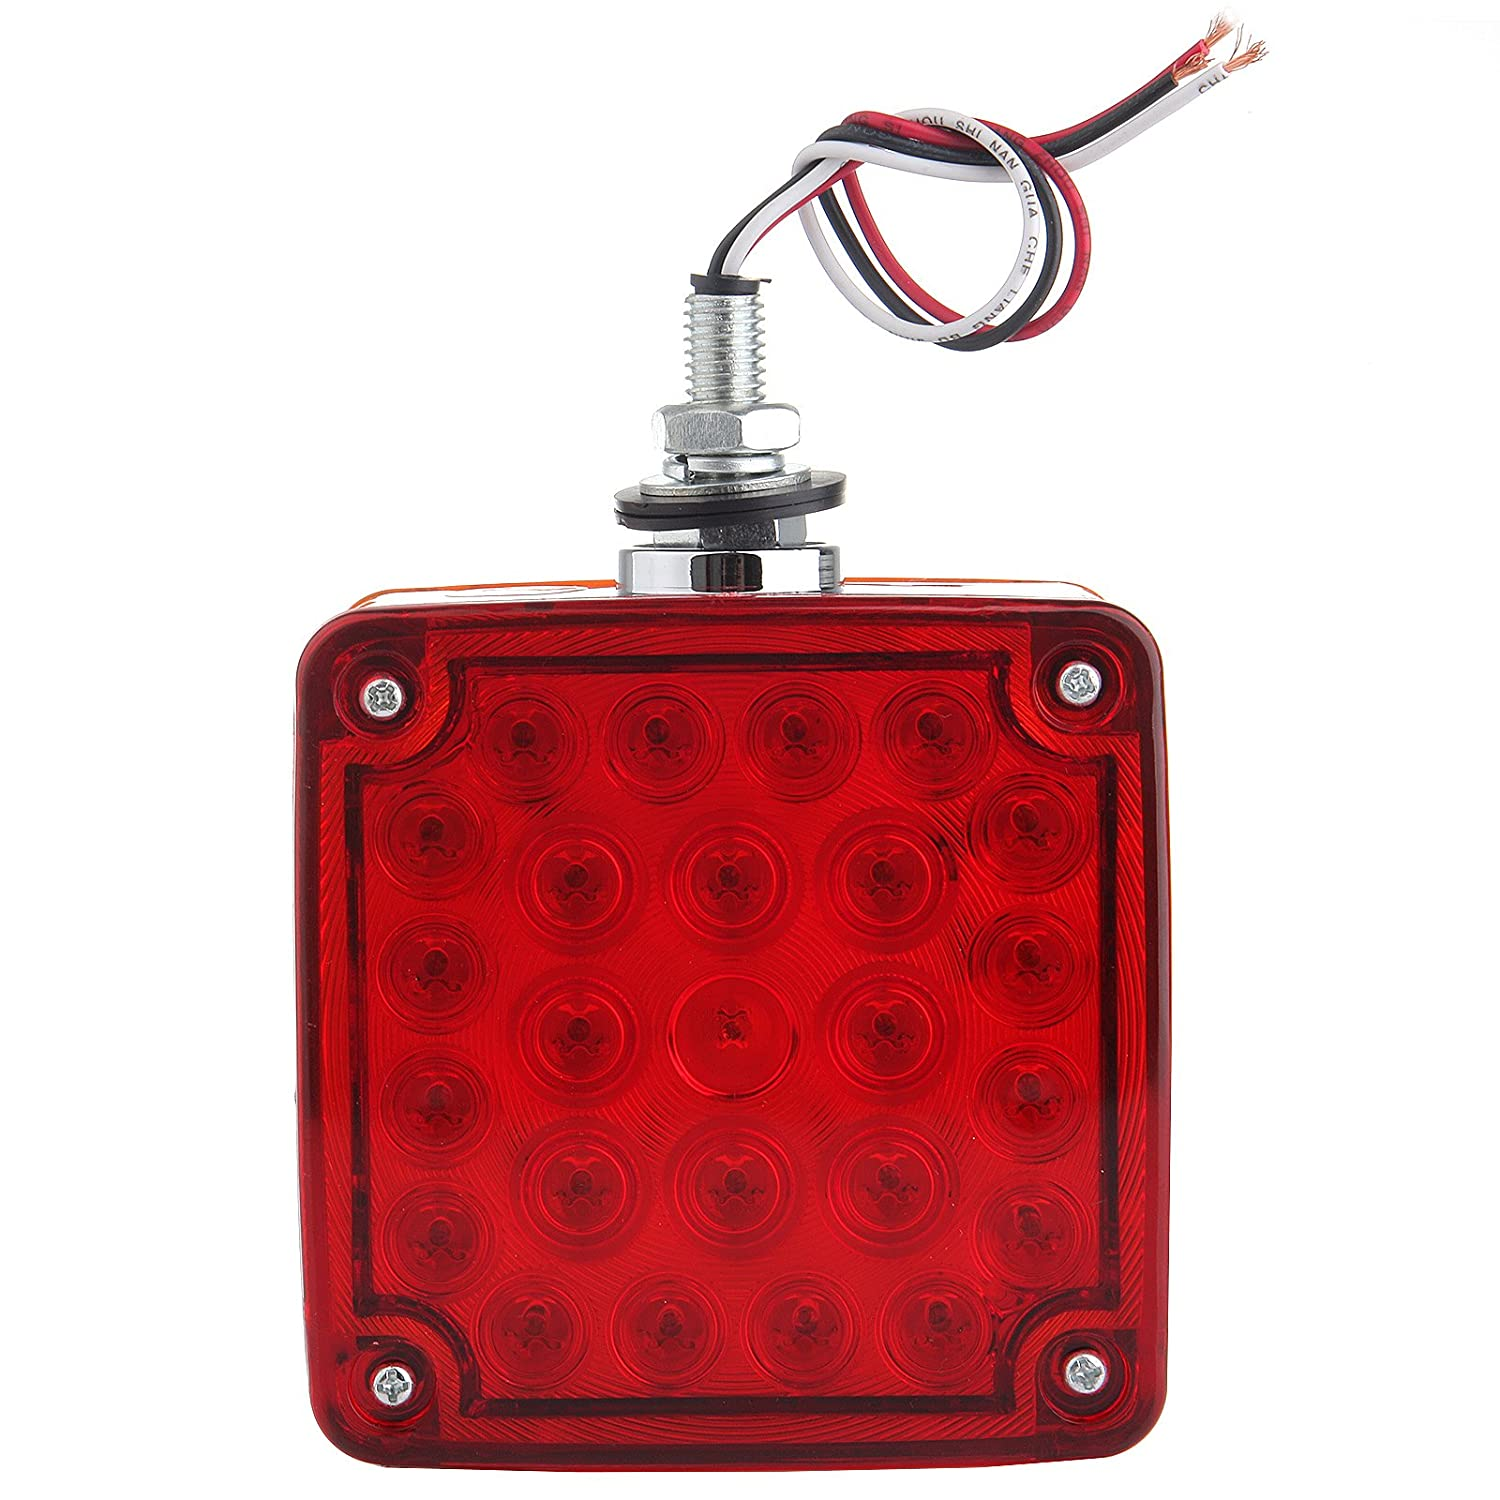 Pack of 2 800063-5210-0924491 cciyu Side Marker Light 52 Leds Stop Turn Tail Lamp Amber//Red Double Face Stud Mount Cab Fender Marker Light Stop Turn Signal Light Tail 52 LED Light Red + Amber